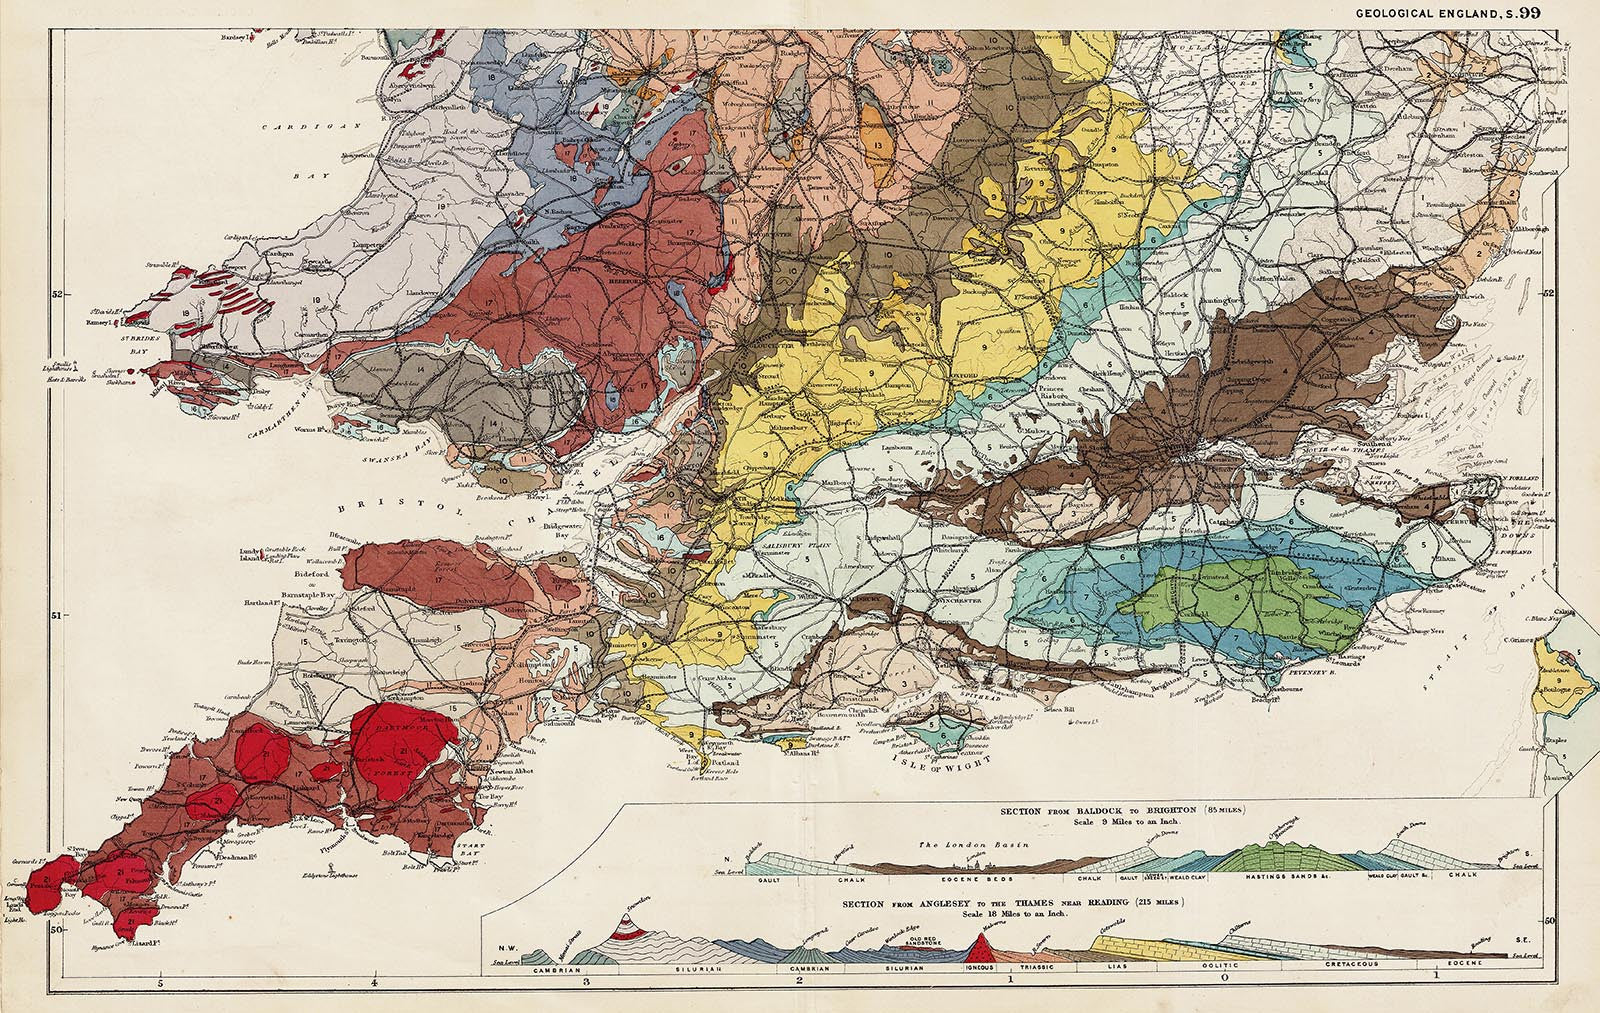 Map Of South England.Geology Of England Wales South In 1890 By G W Bacon